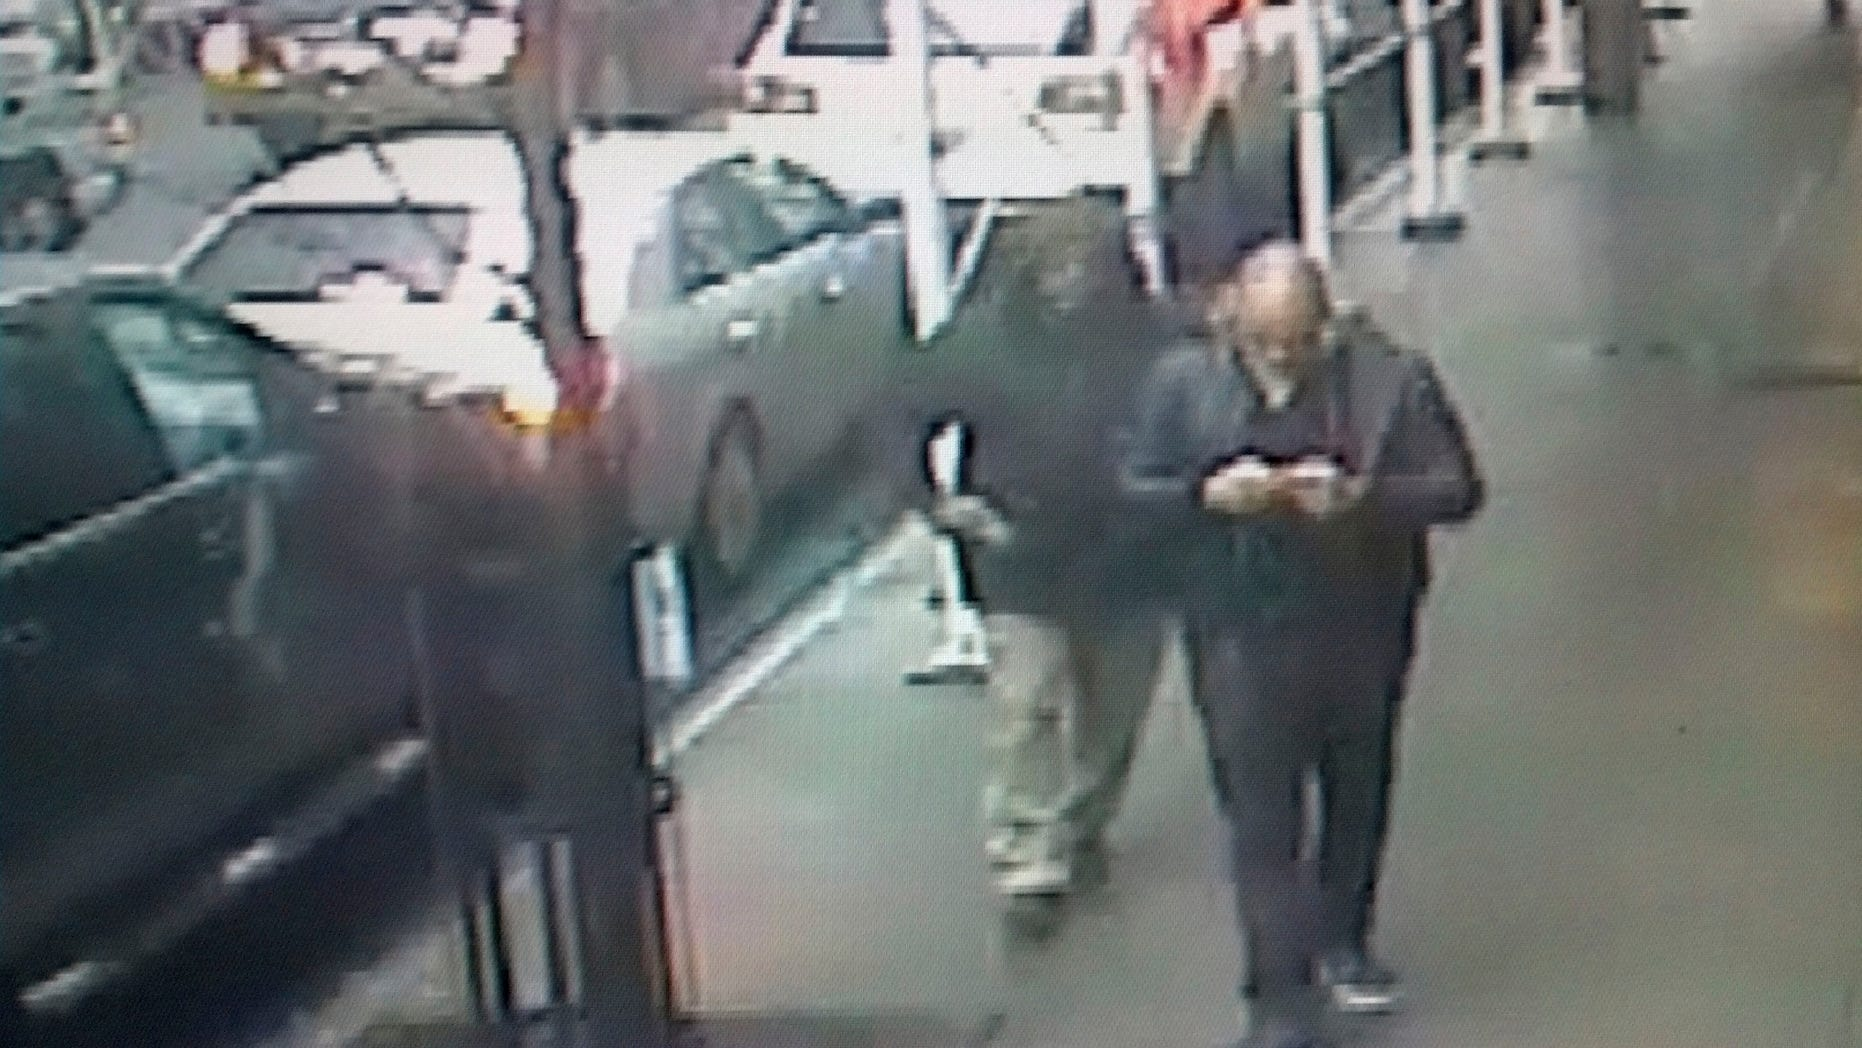 A gunman is seen pulling a weapon behind Brandon Lincoln Woodard (R) a moment before Woodward was shot in Manhattan, in this image taken from video and given to the media by the New York City Police Department, December 11, 2012.